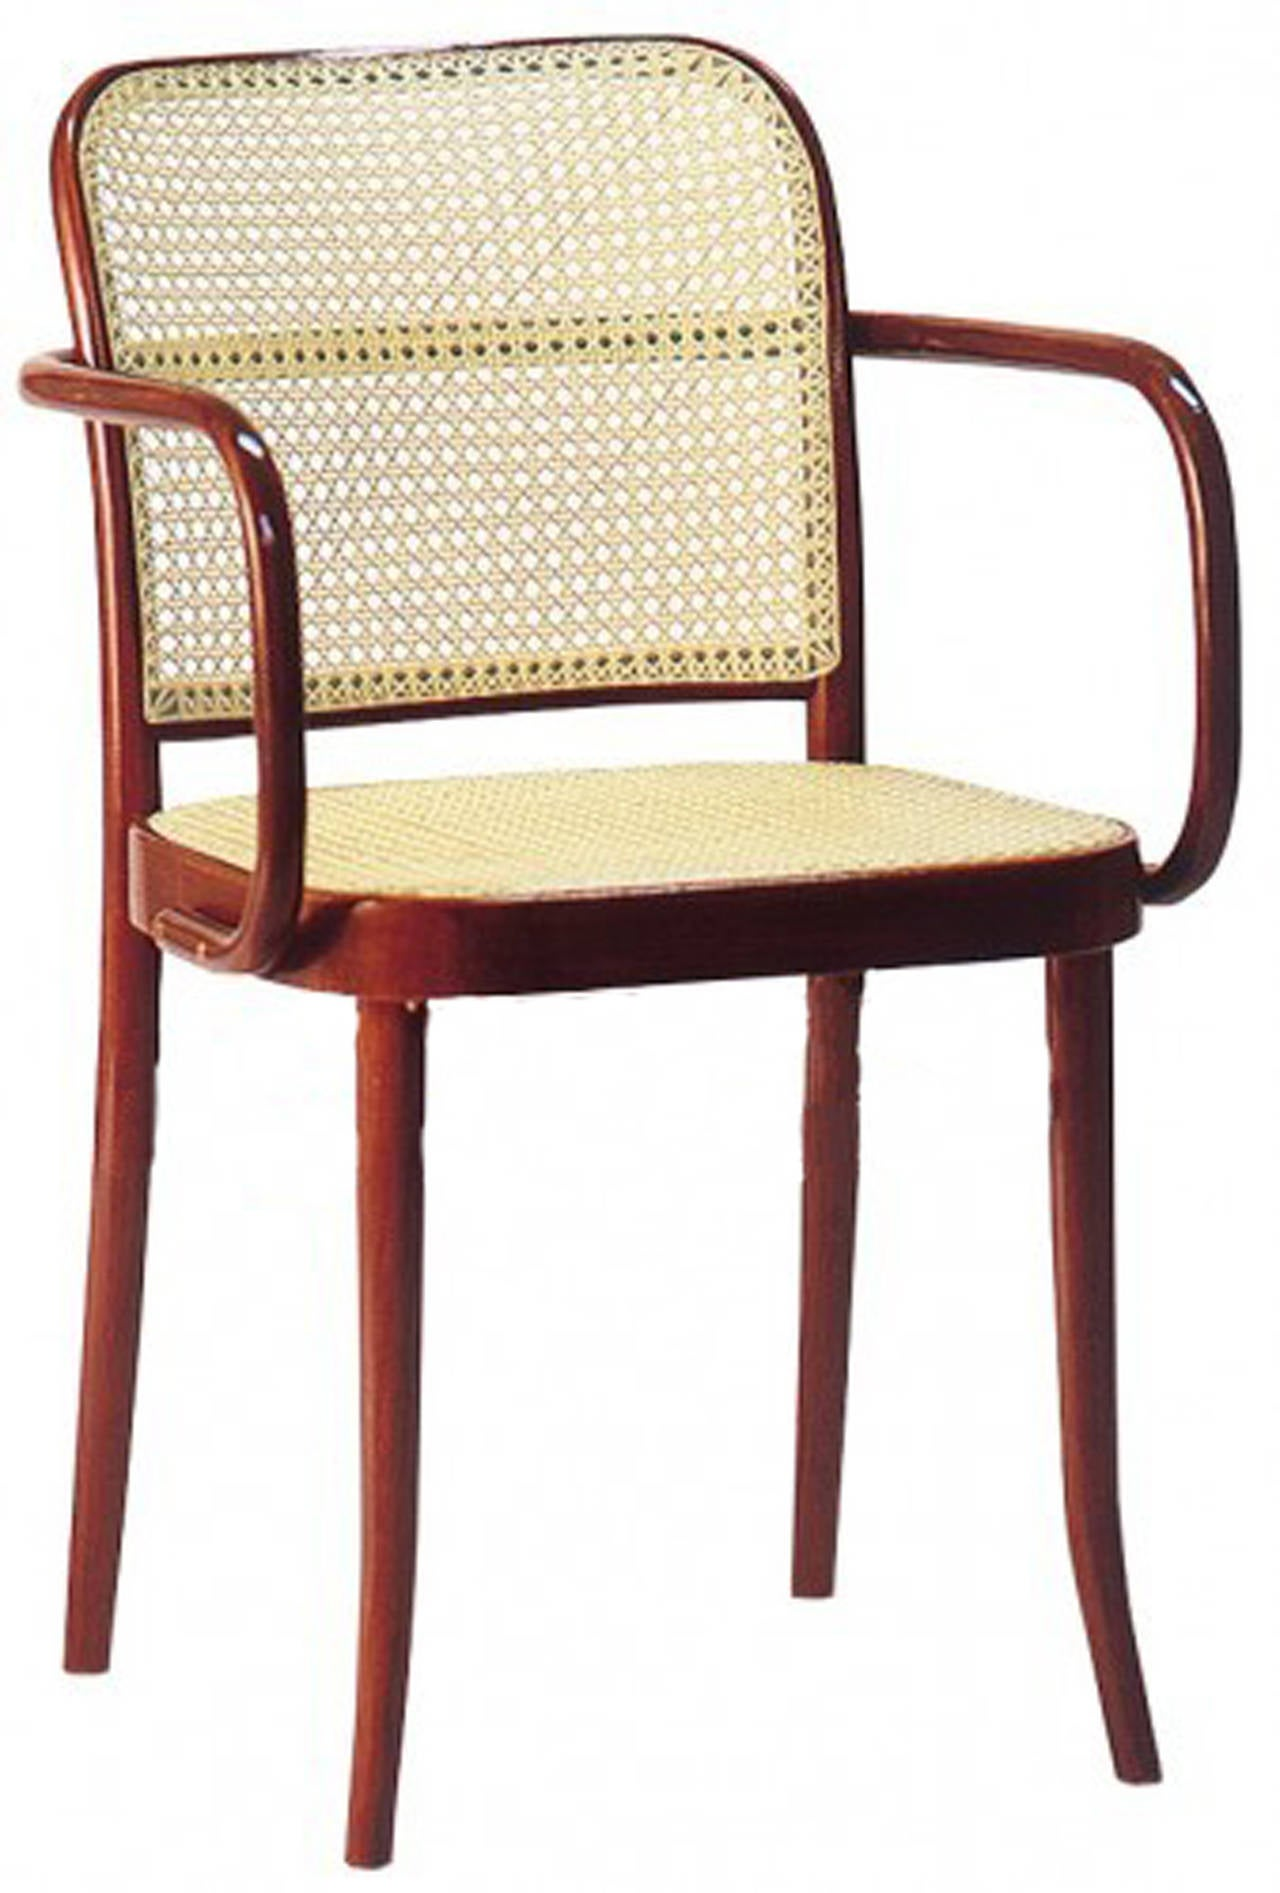 Thonet A 811 Chair Attributed To Josef Hoffmann Or Josef